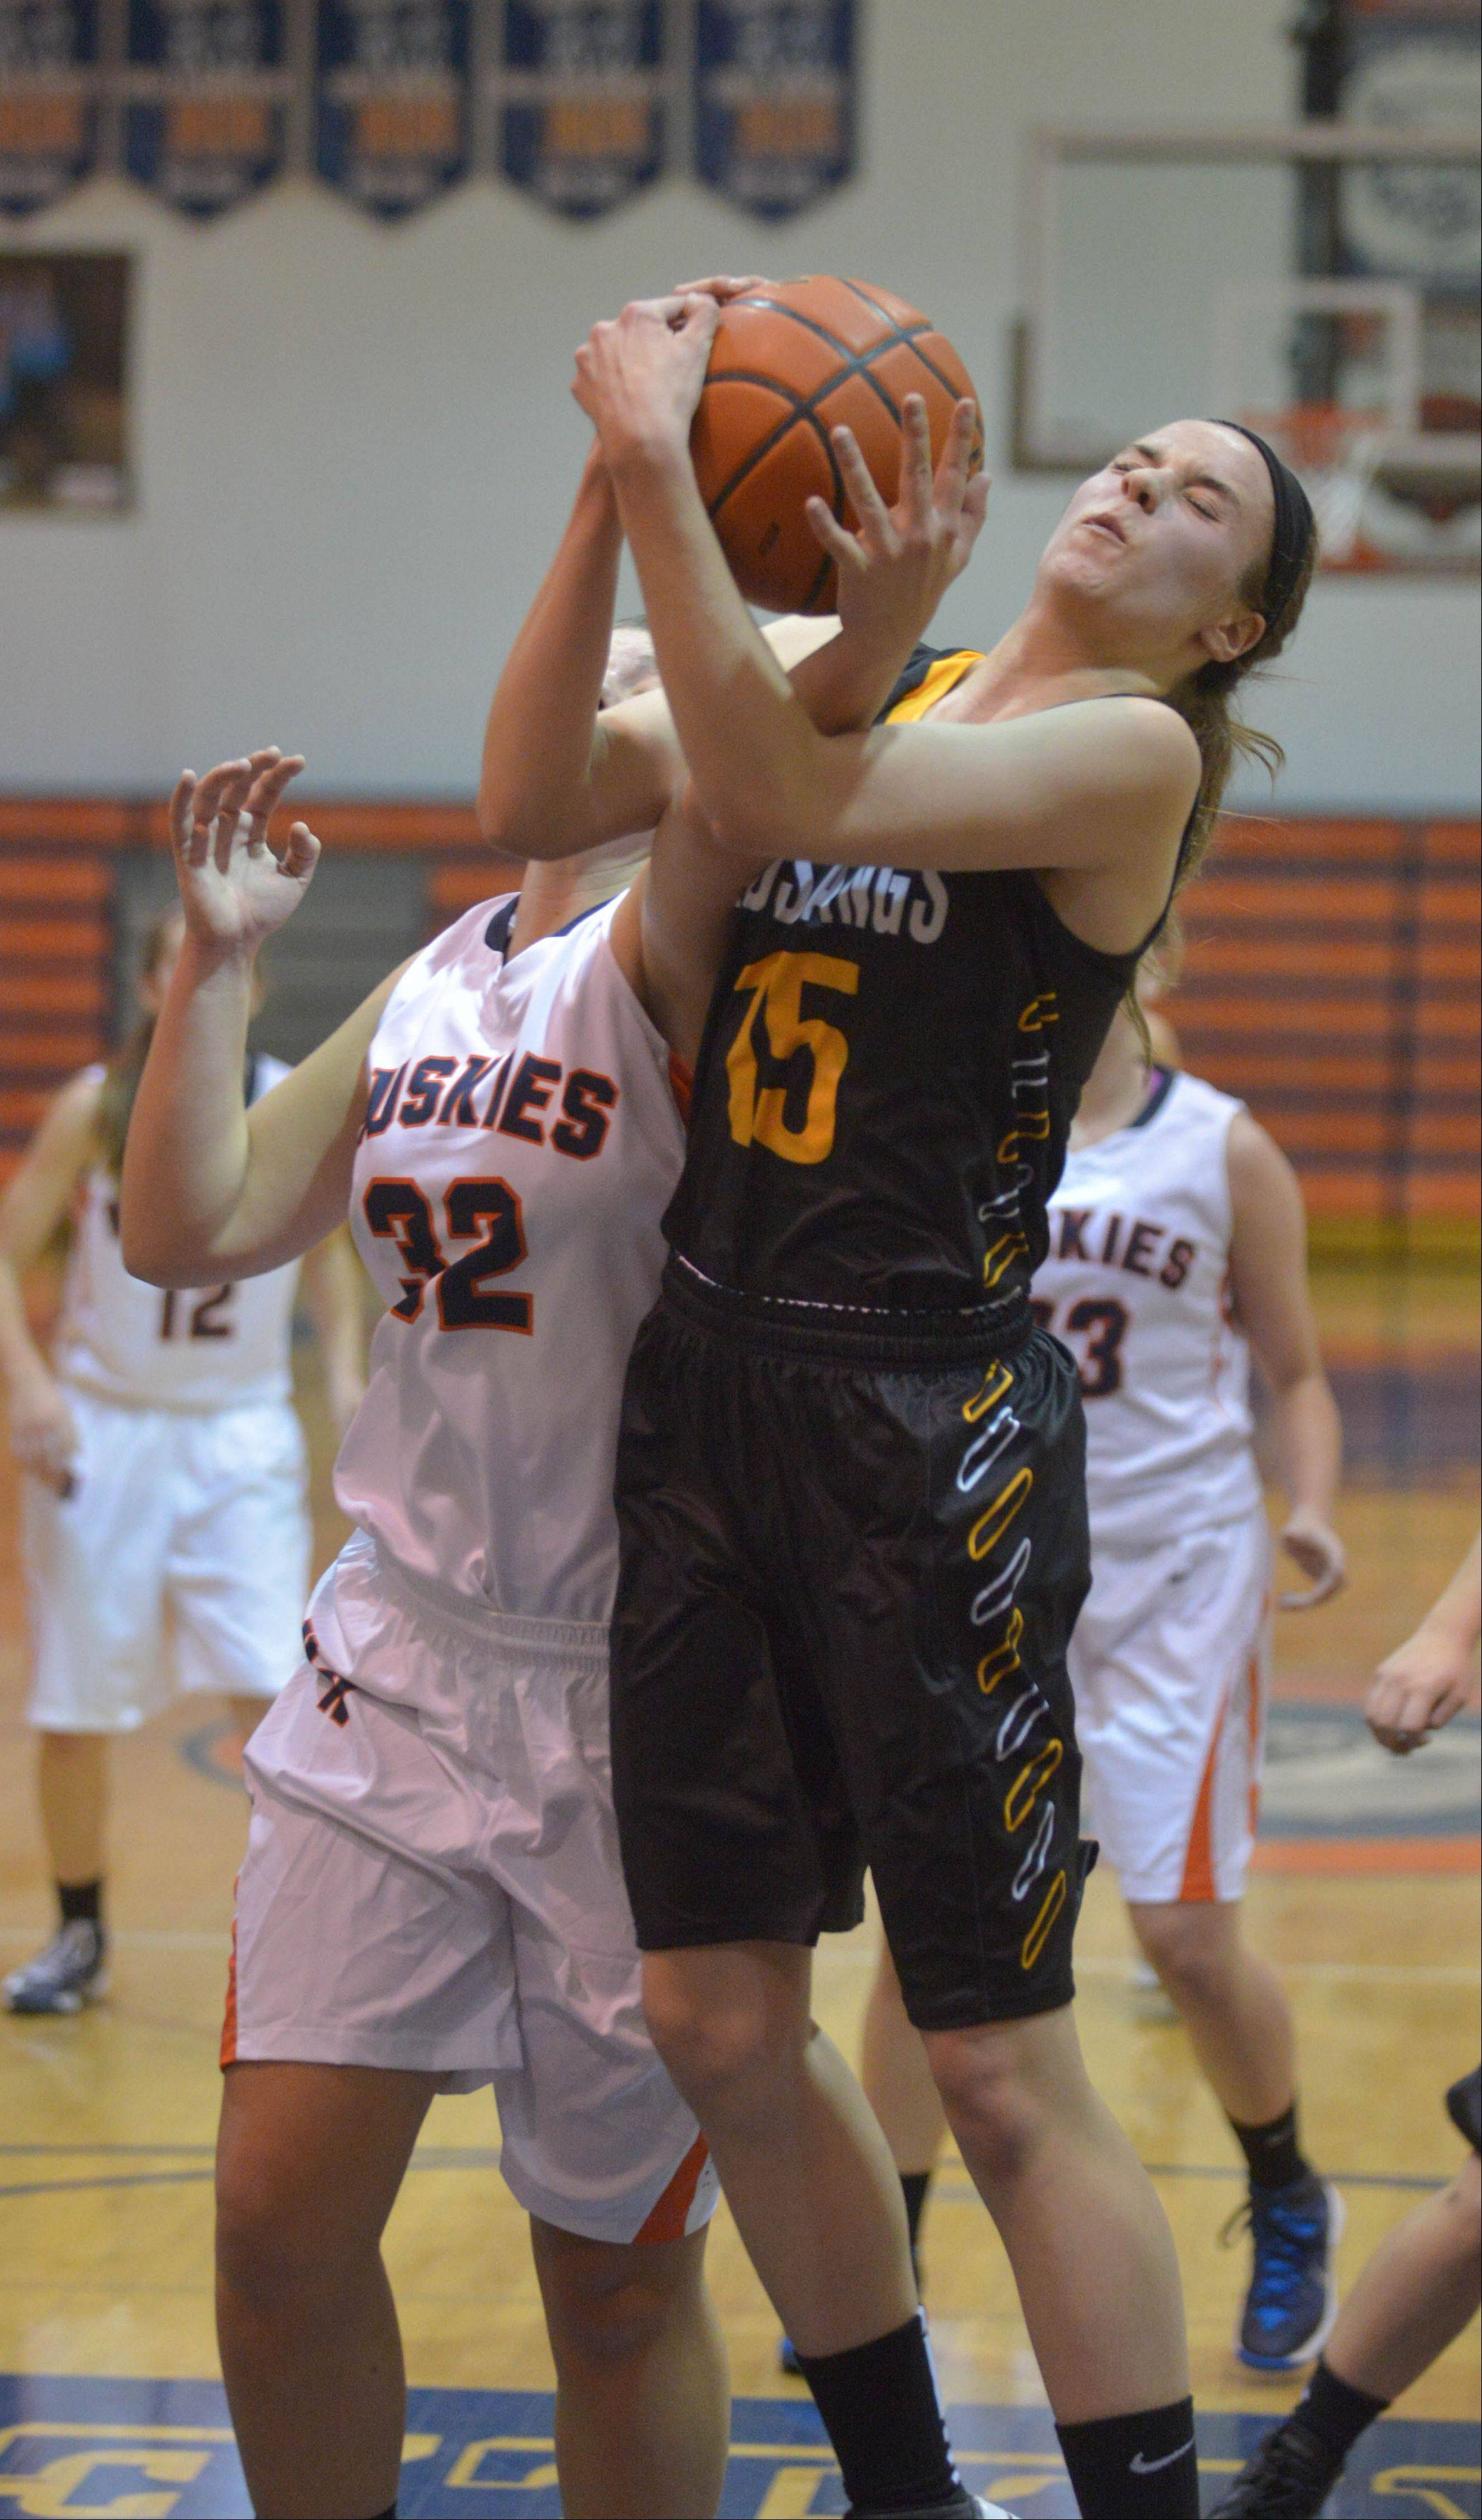 Morganne Freeman of Naperville North and Jenny Voytell of Metea go up for a rebound during the Metea Valley at Naperville North girls basketball game Tuesday.